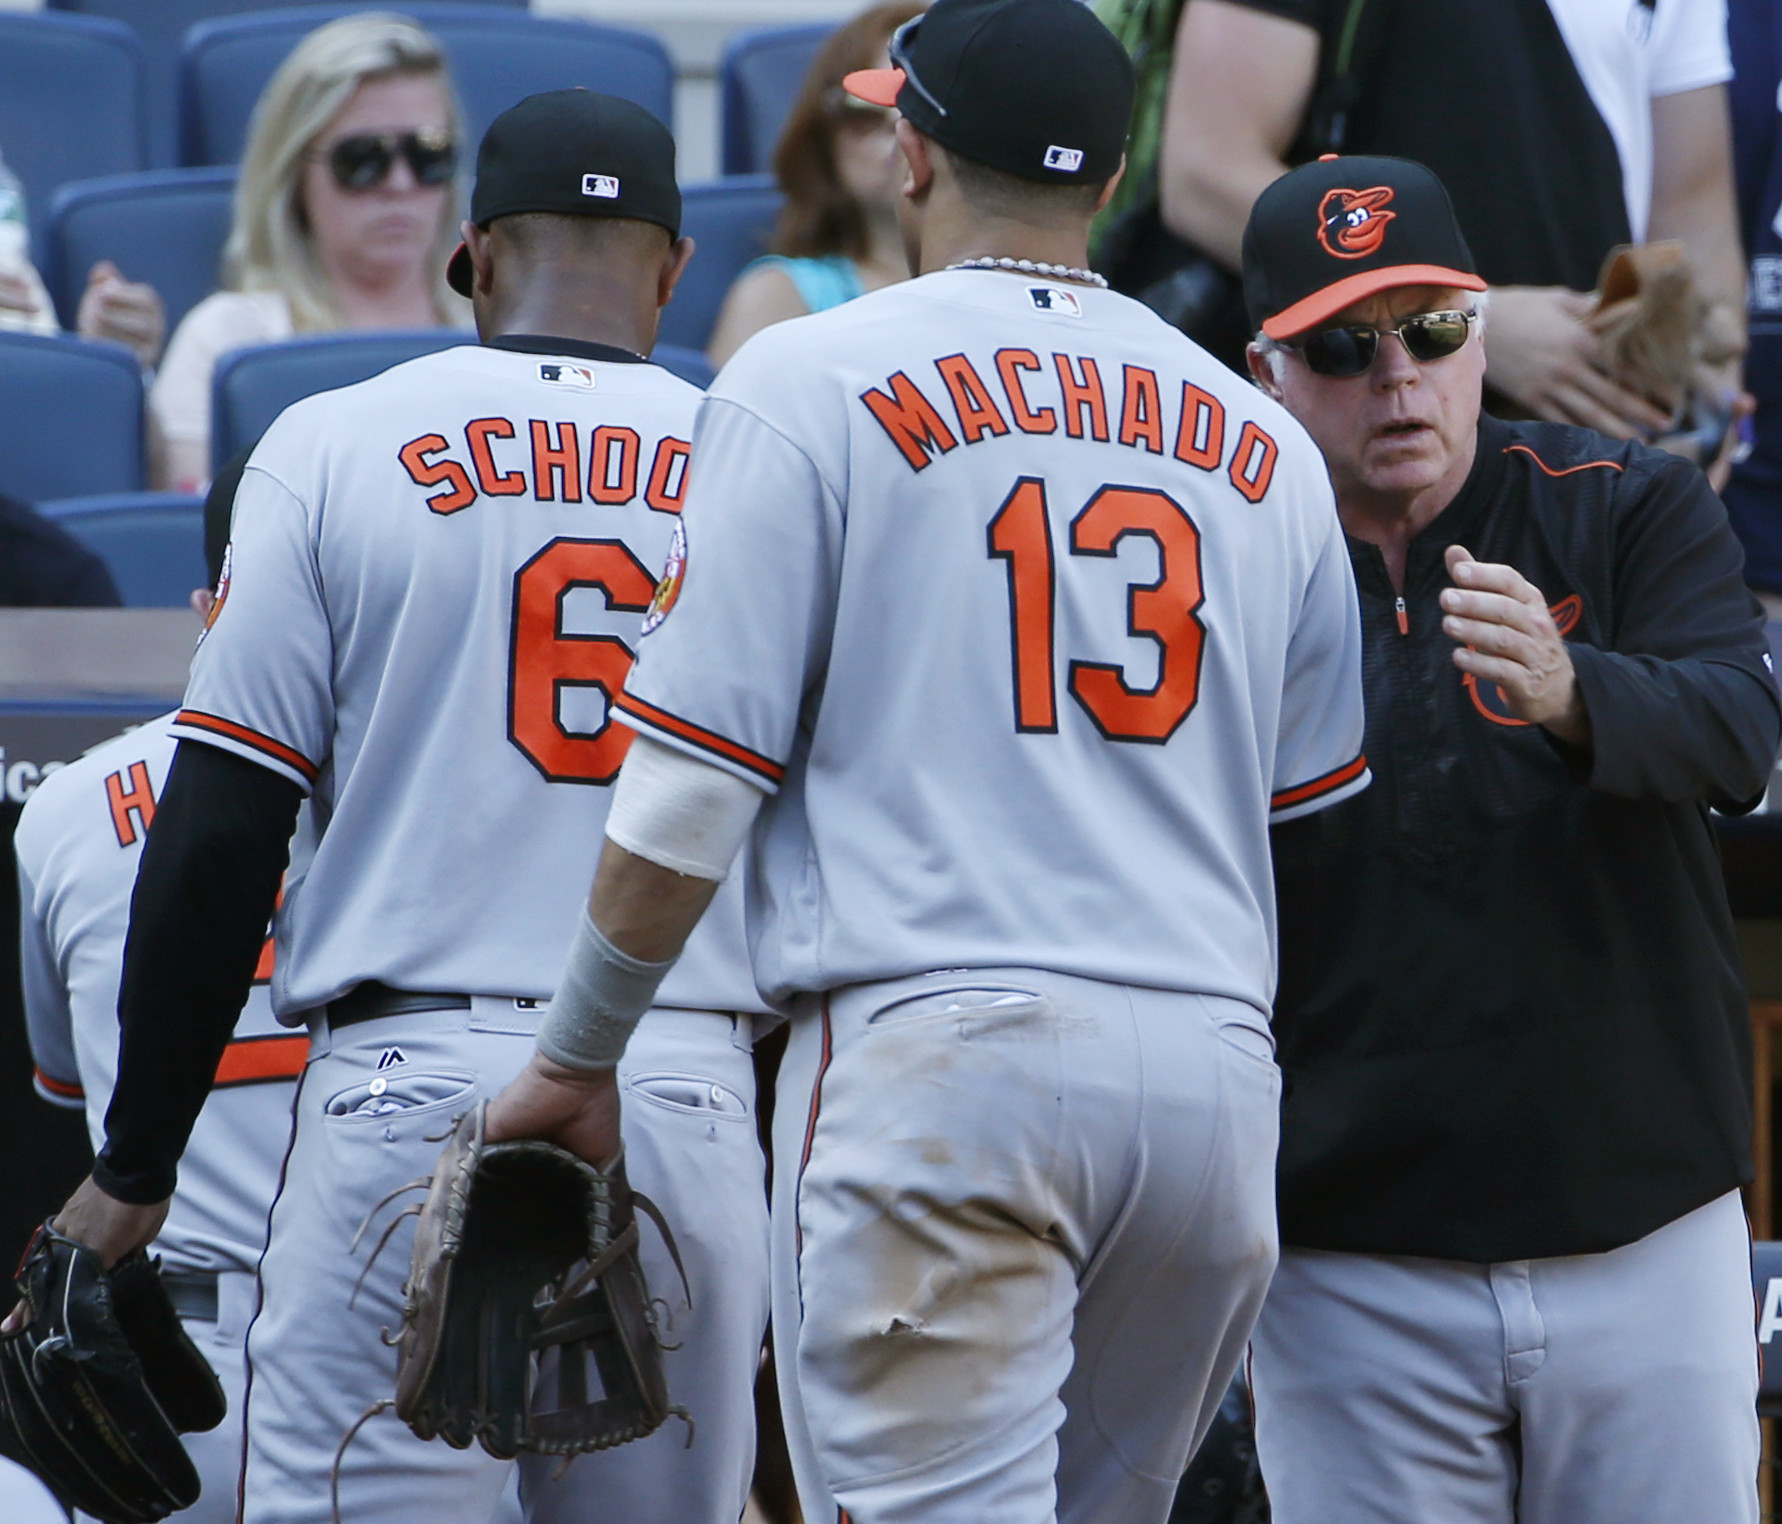 Bal-orioles-on-deck-what-to-watch-monday-vs-blue-jays-20160829